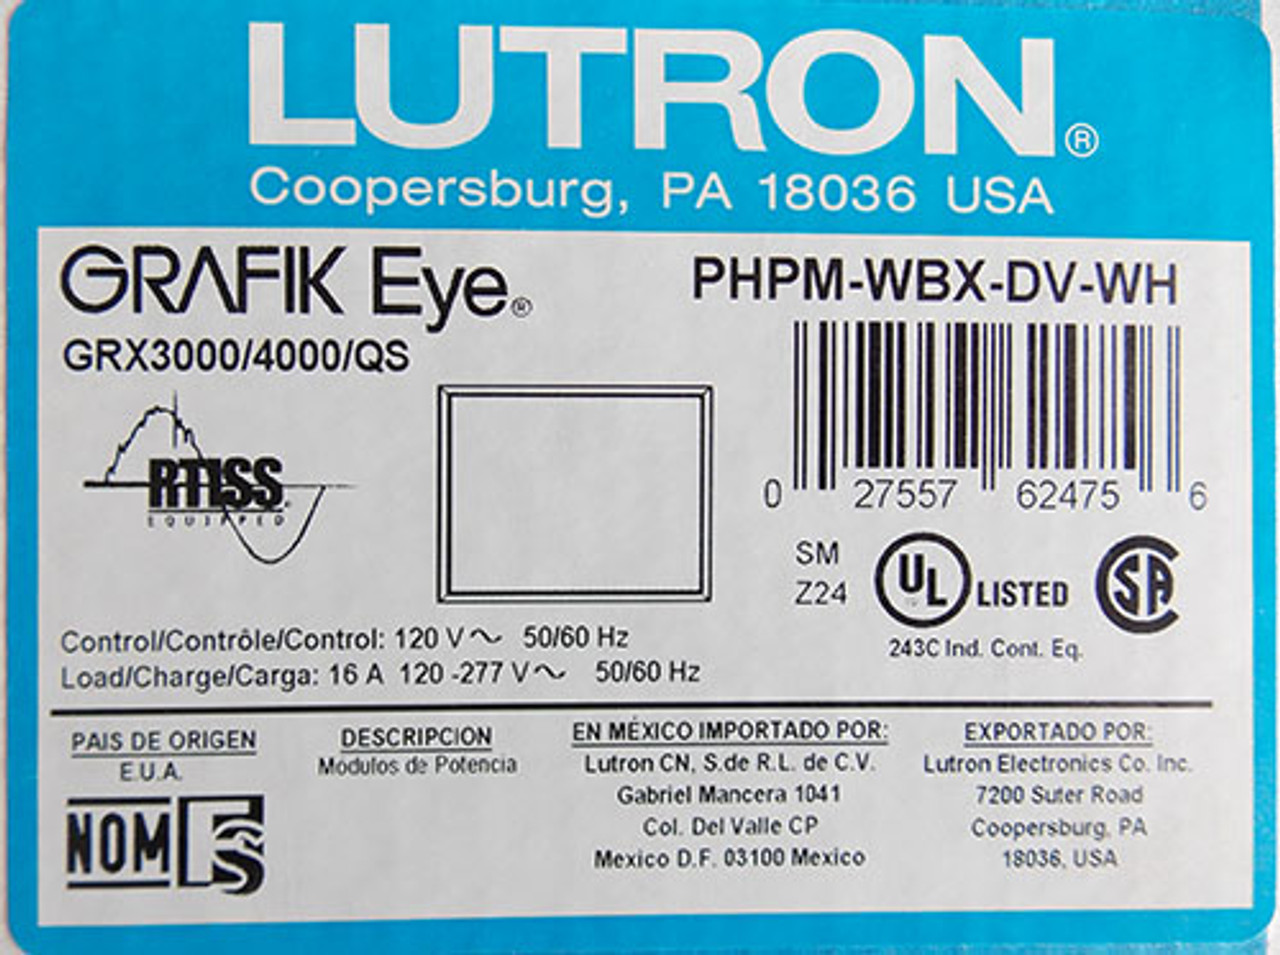 Lutron PHPM-WBX-DV-WH Grafik Eye Phase Adaptive Power Module 120V 50/60 Hz - New